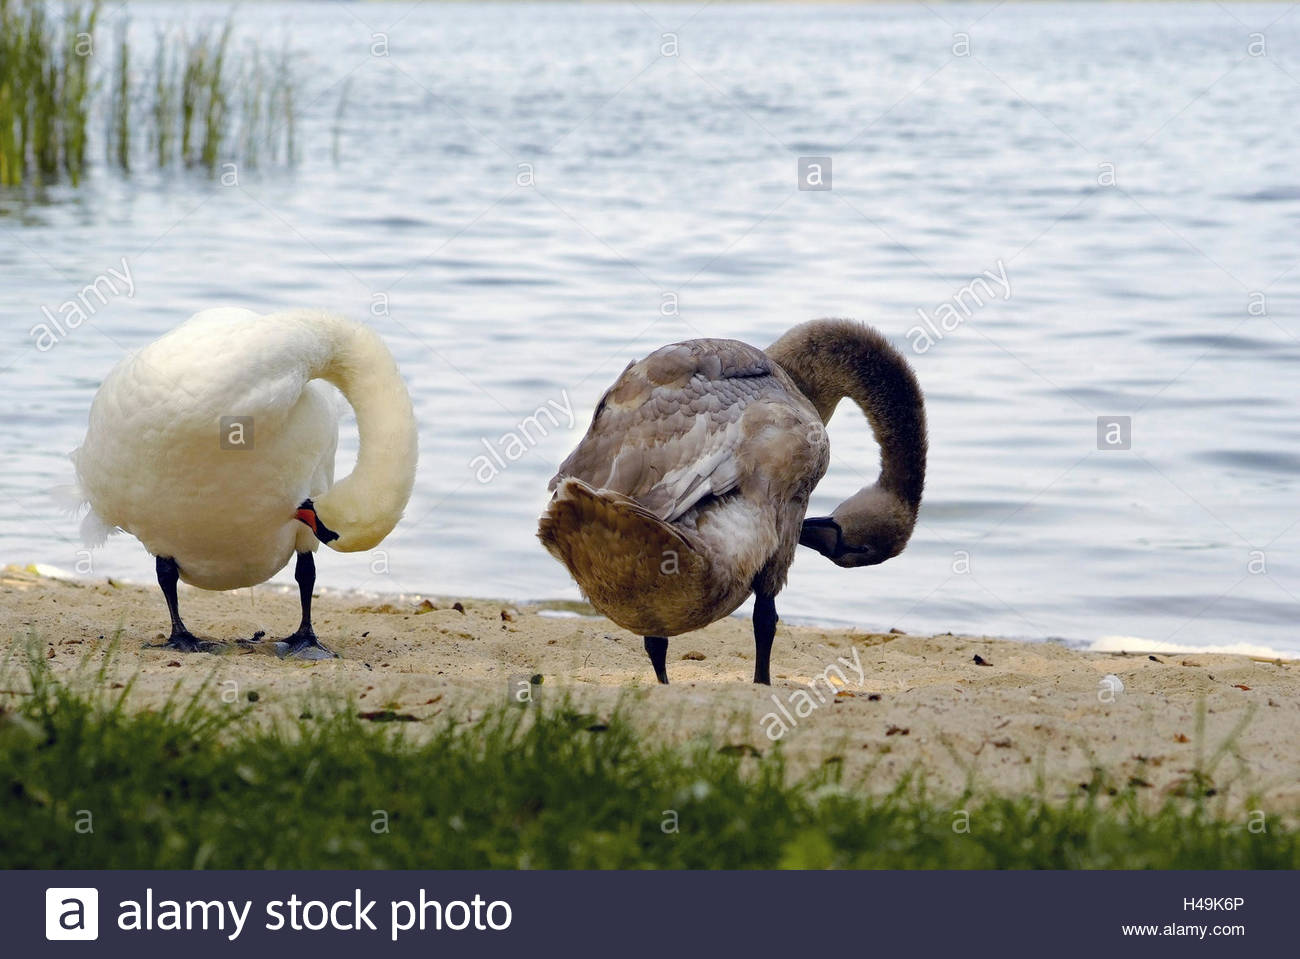 Skirmish lake, shore, two swans clean synchronically her plumage, - Stock Image